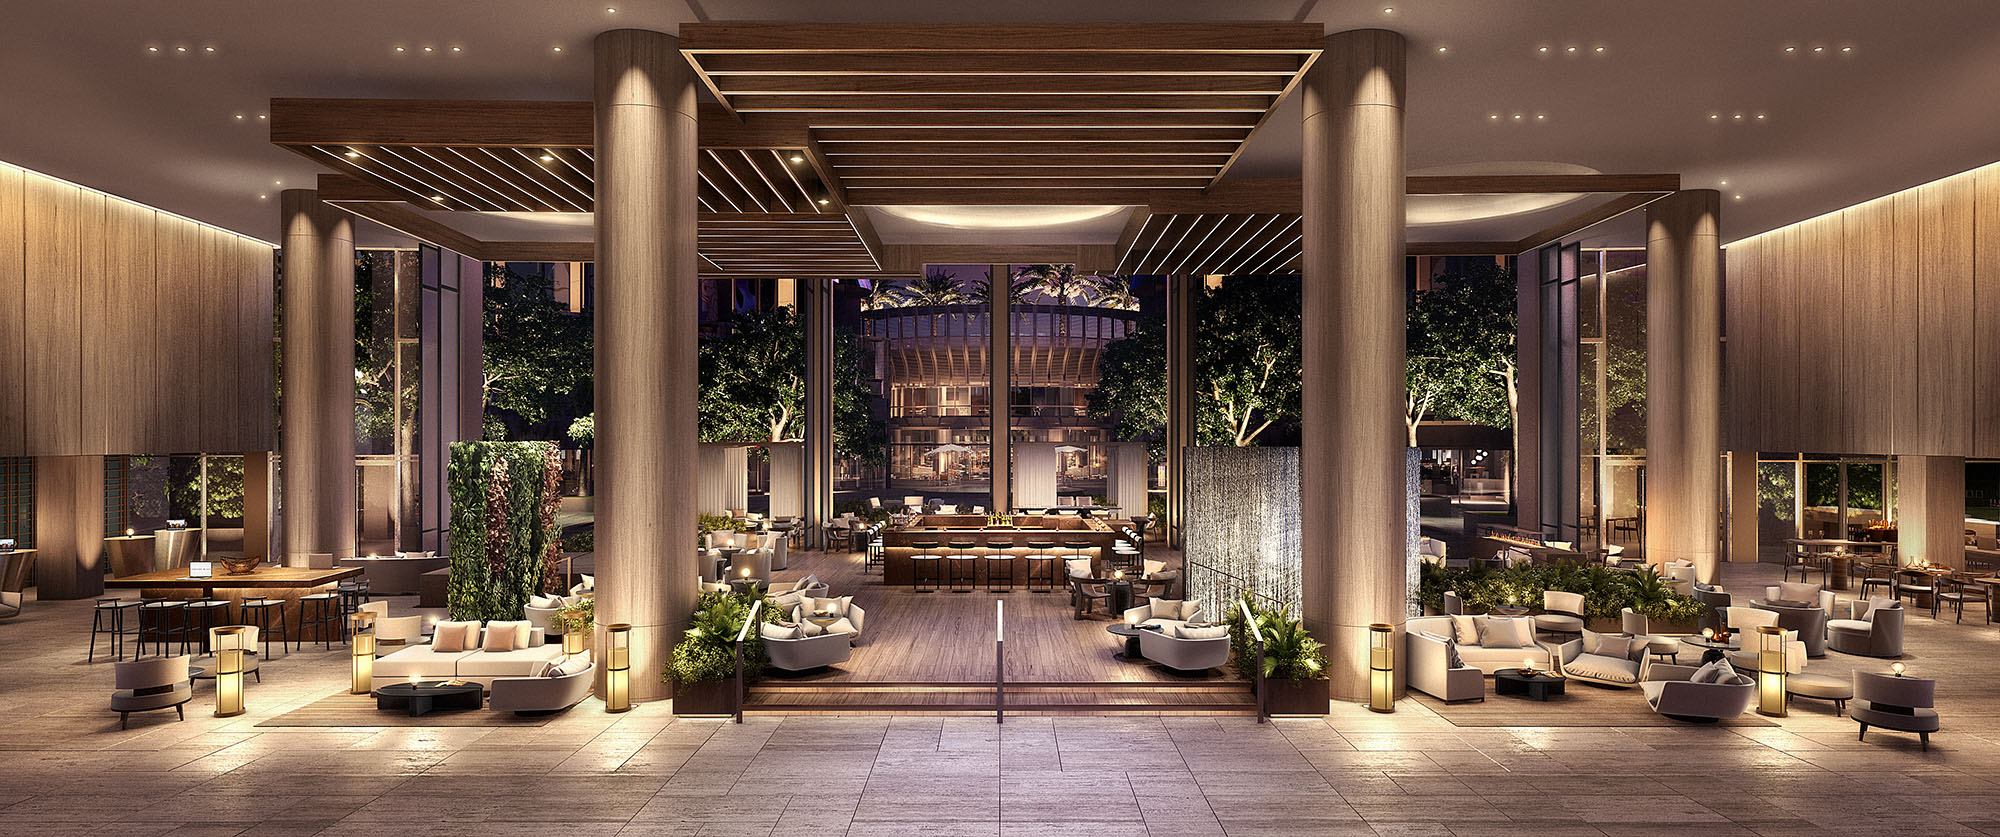 New Renderings Of Glitzy Century Plaza Hotel And